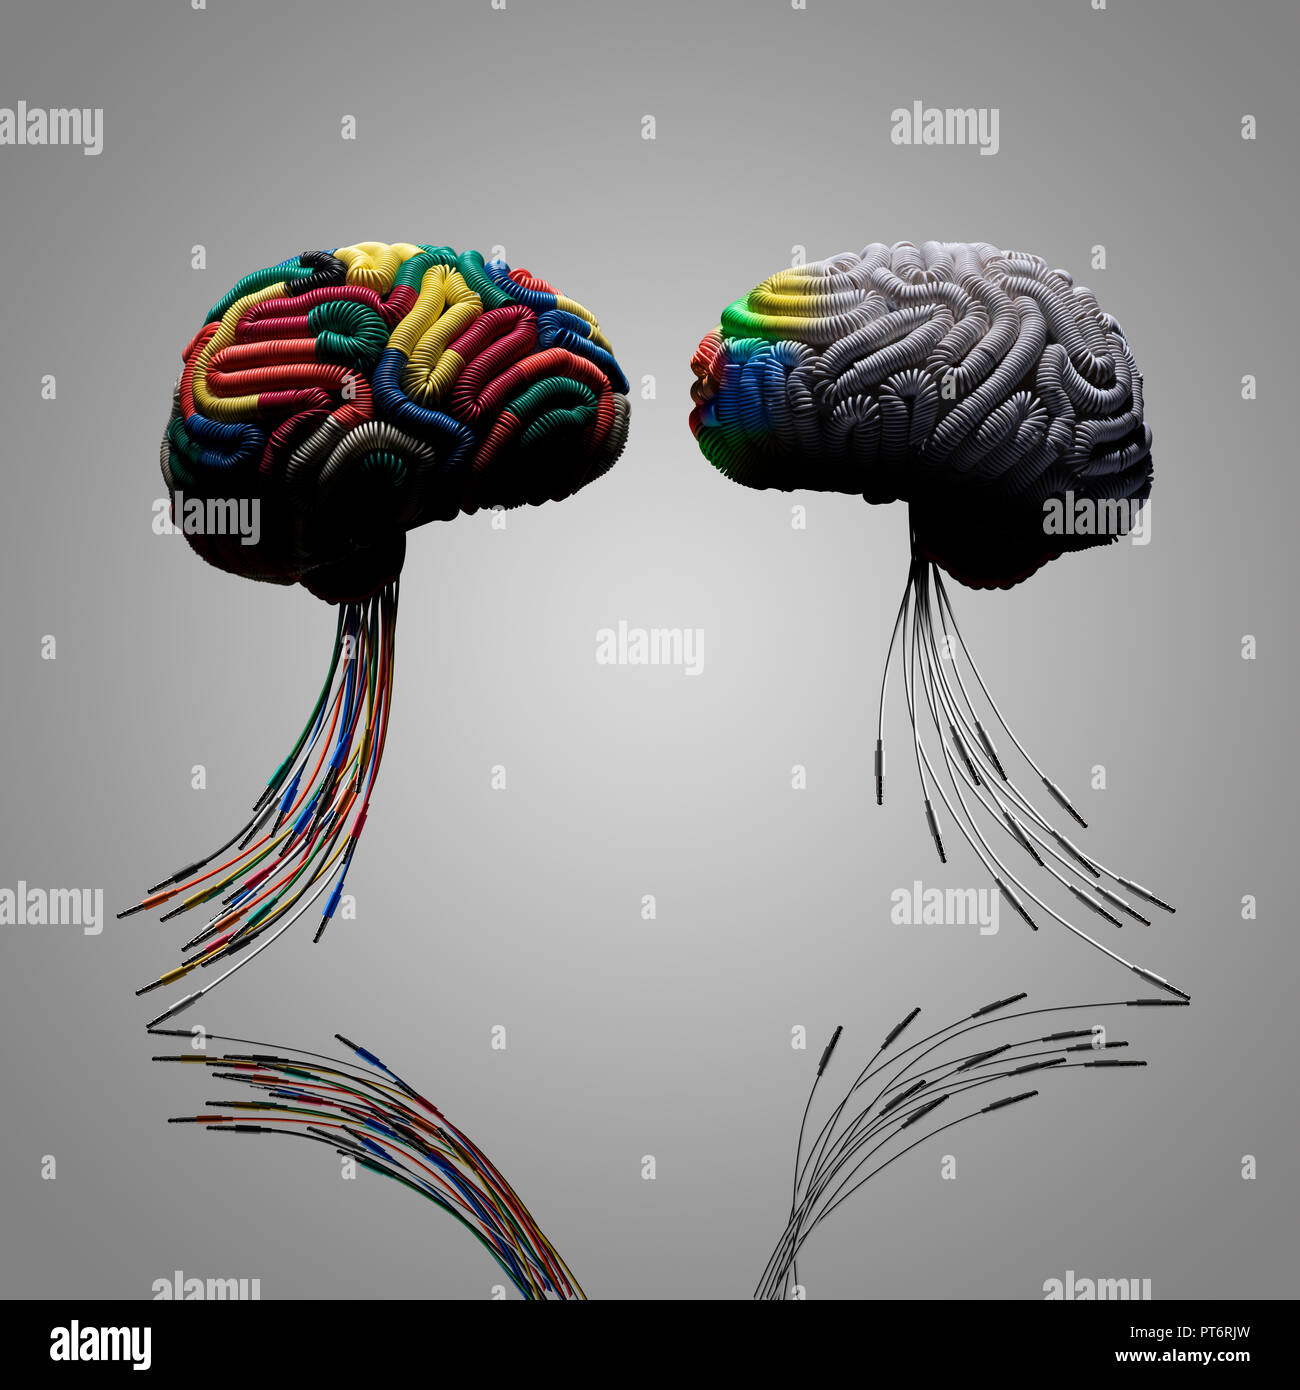 Concept 2 Two Brains Making A Connection By Color Wires Stem Made Learning Electrical Wiring Of Jack Plugs Wired Connectivity Teaching Influenc